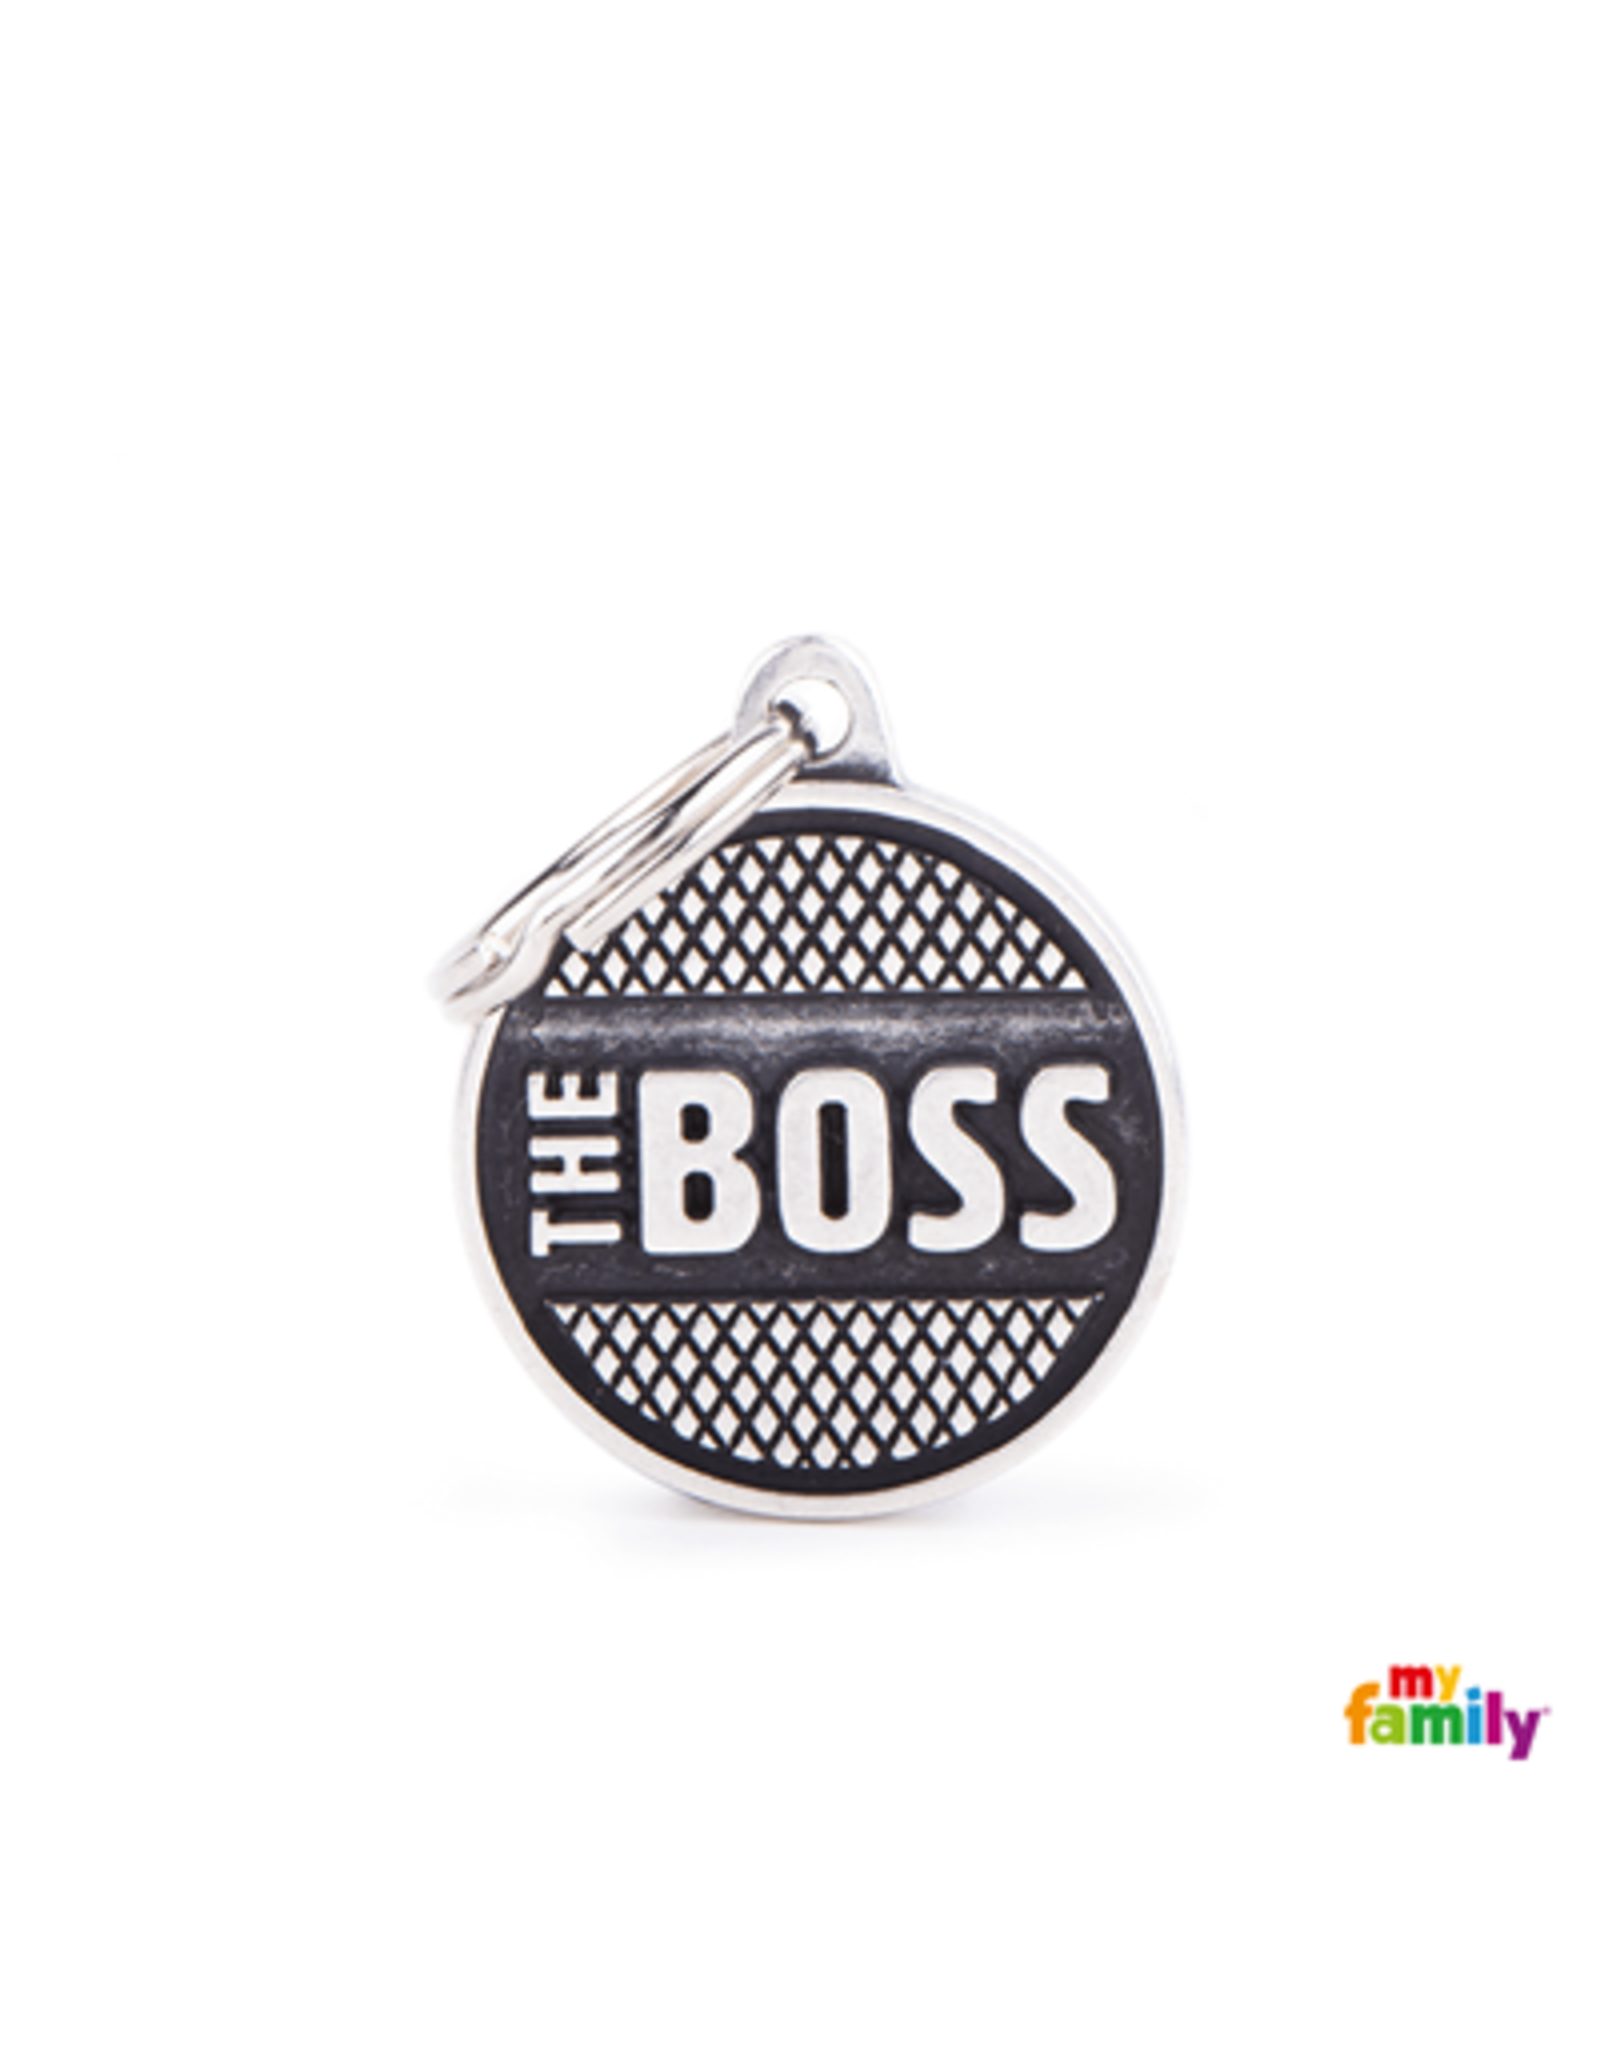 MyFamily Tag - The Boss